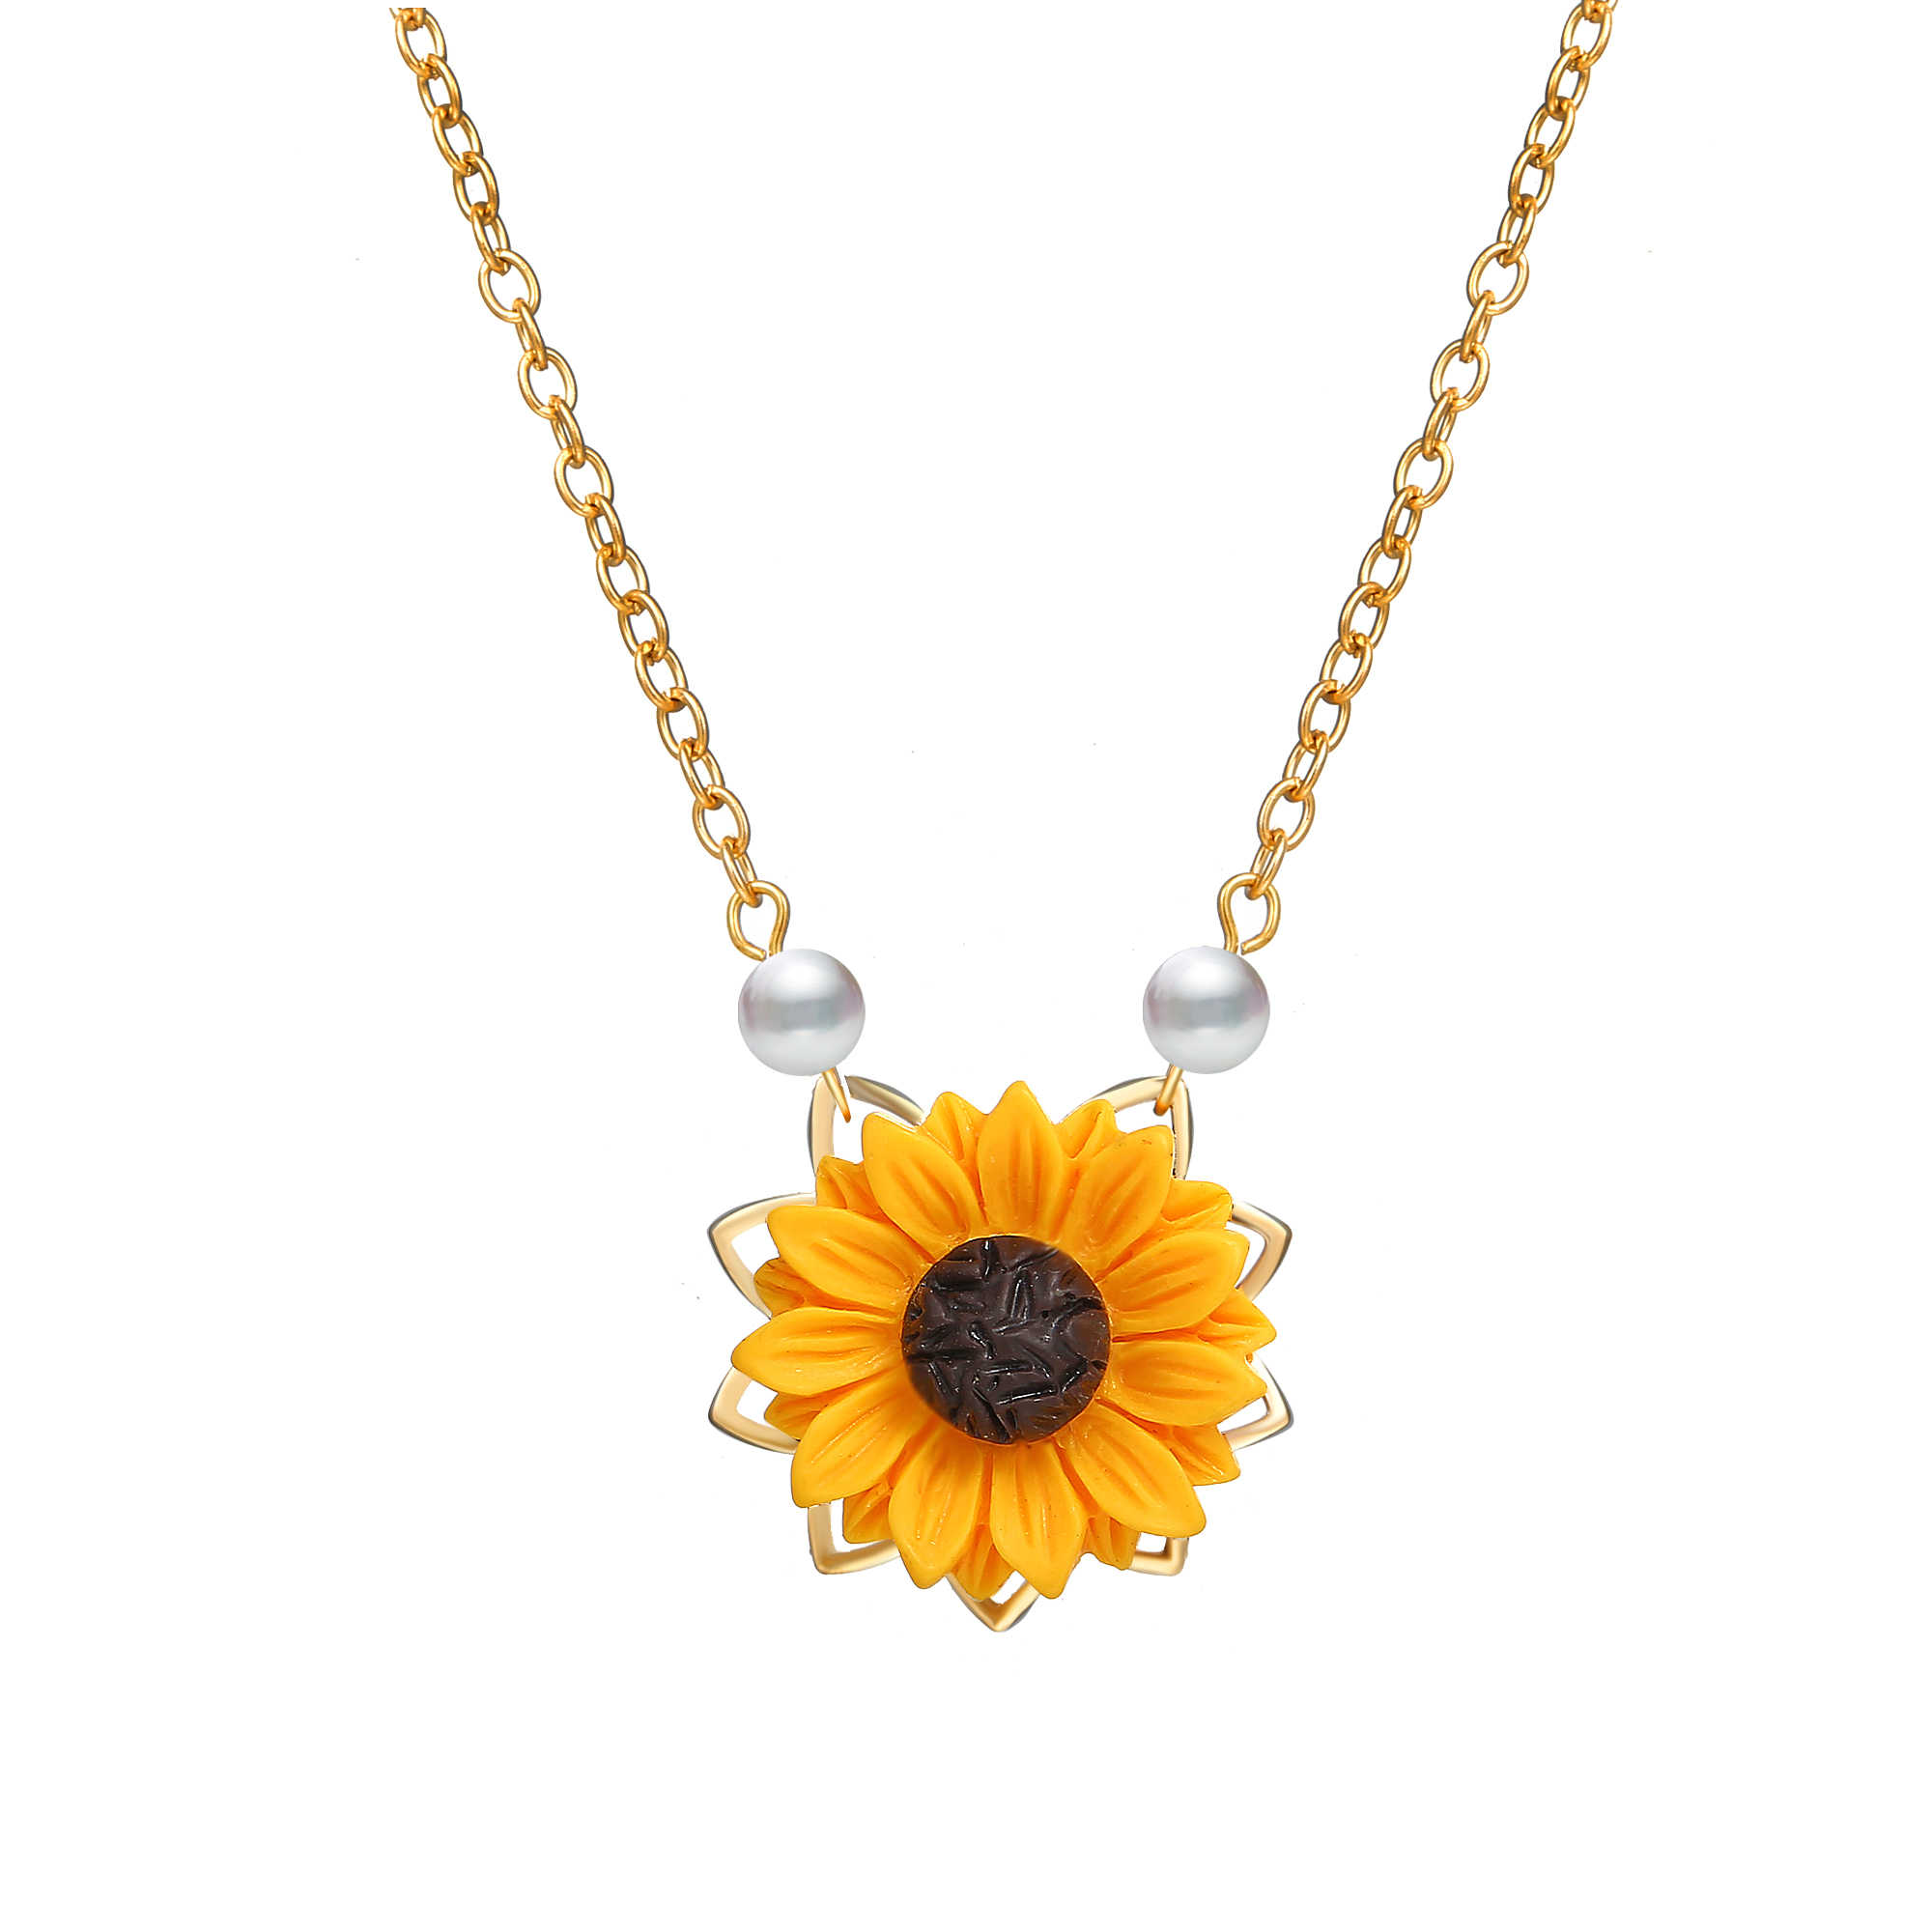 Poputton Imitation Pearl Sunflower Necklace For Women Clothes Accessories 3 Colors Sun Flower Pendant Necklaces Wedding Jewelry